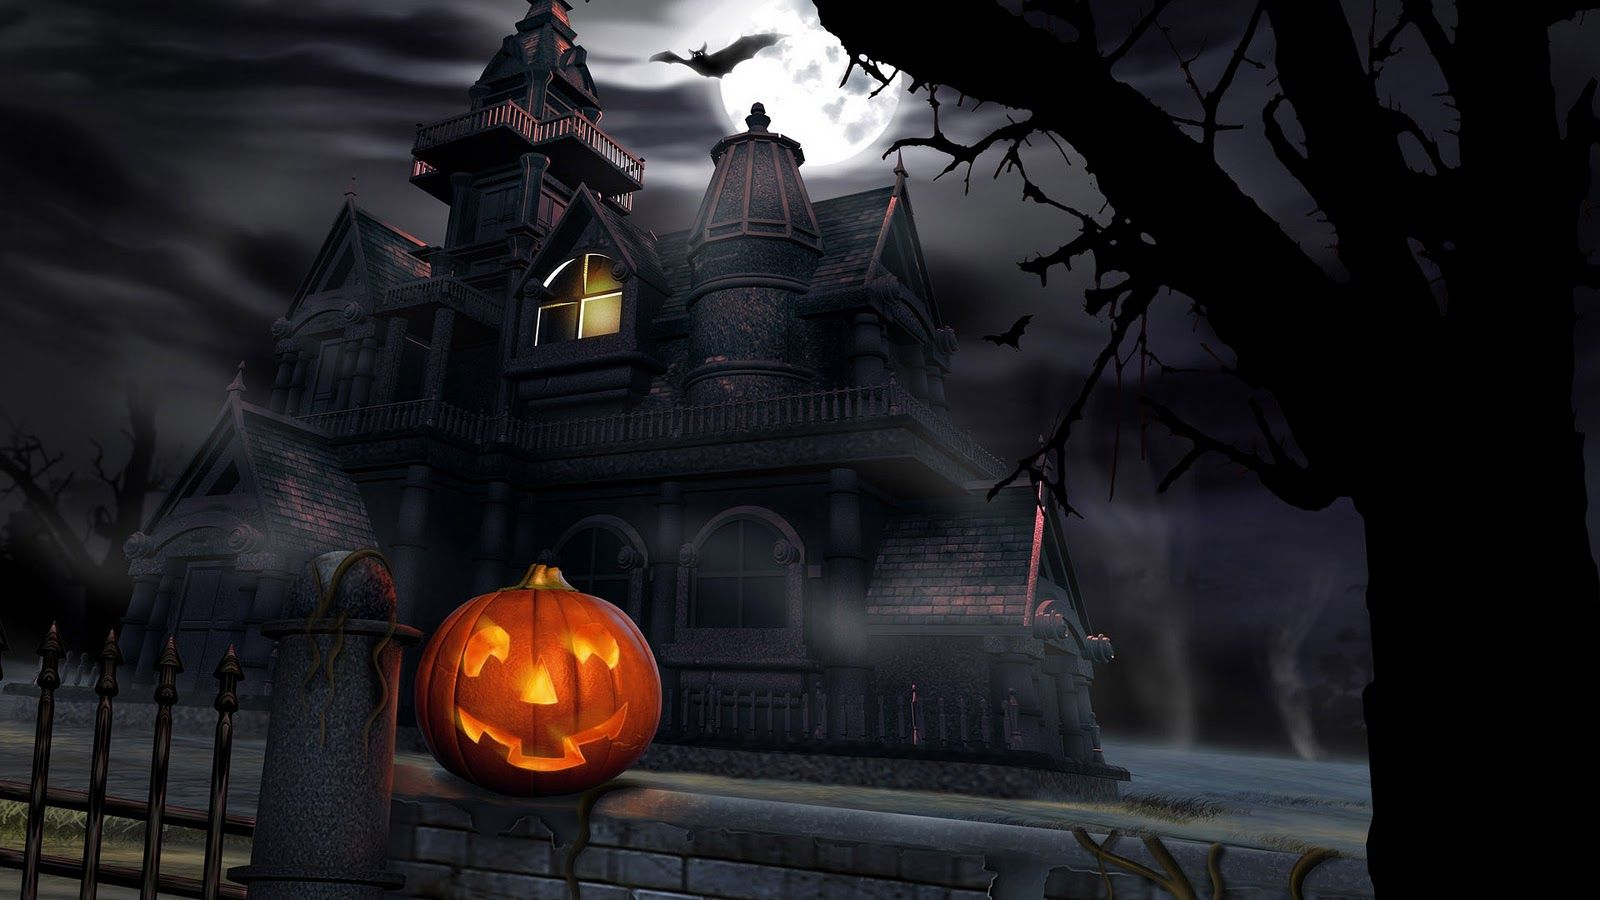 Halloween Scary Animated Desktop Wallpaper Halloween Desktop Wallpaper Halloween Pictures Free Halloween Wallpaper